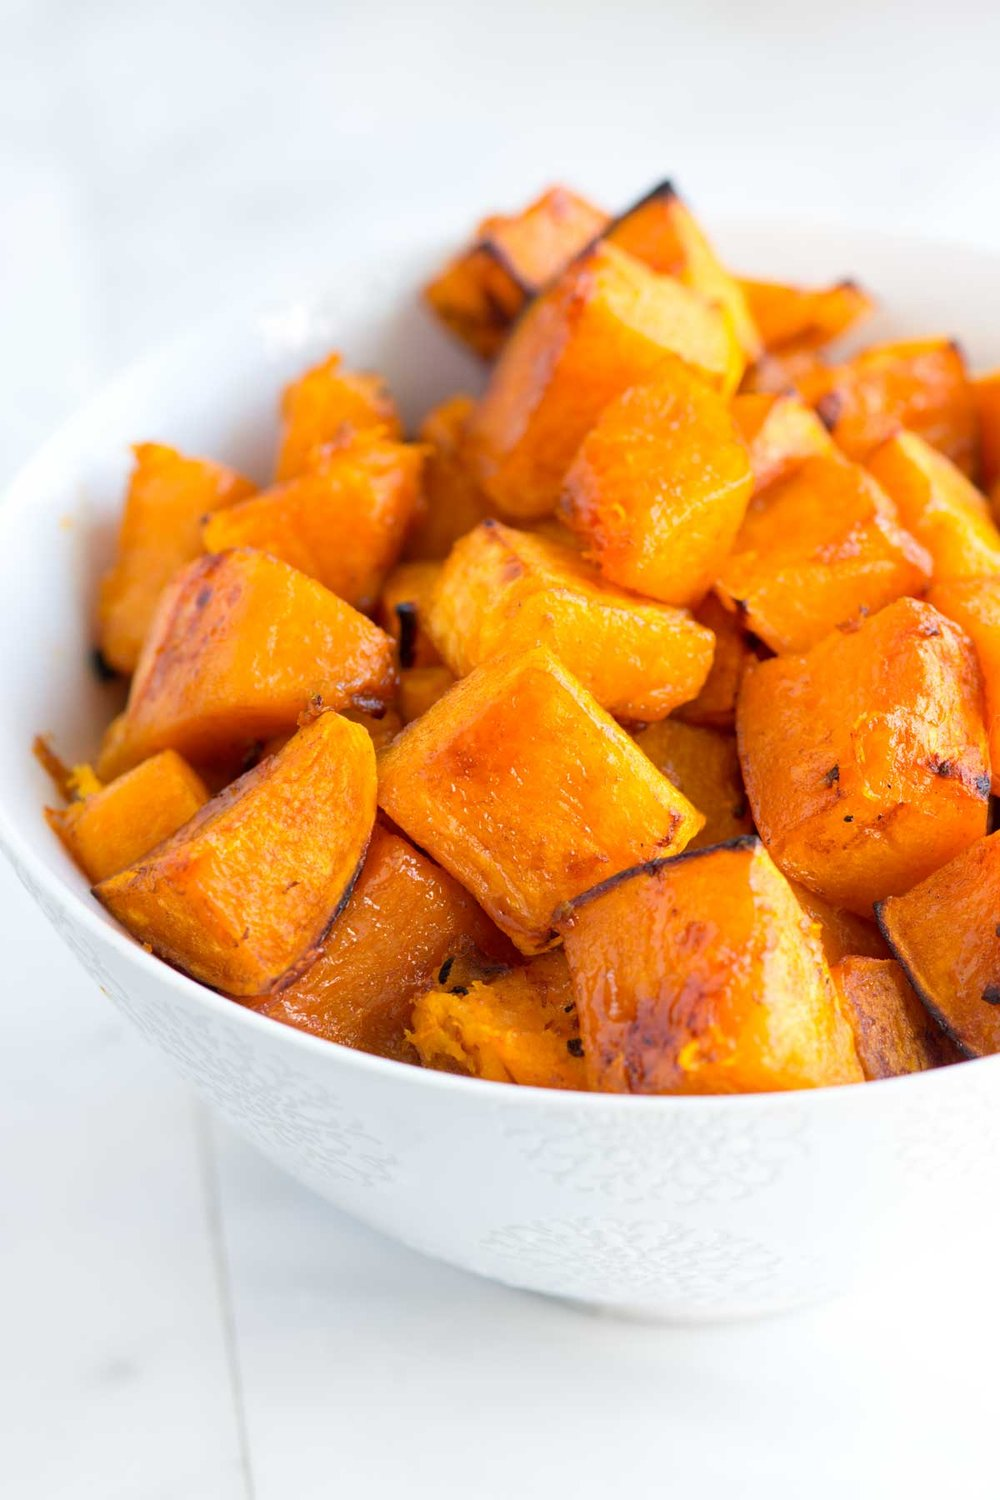 Roasted-Butternut-Squash-Recipe-3-1200.jpg